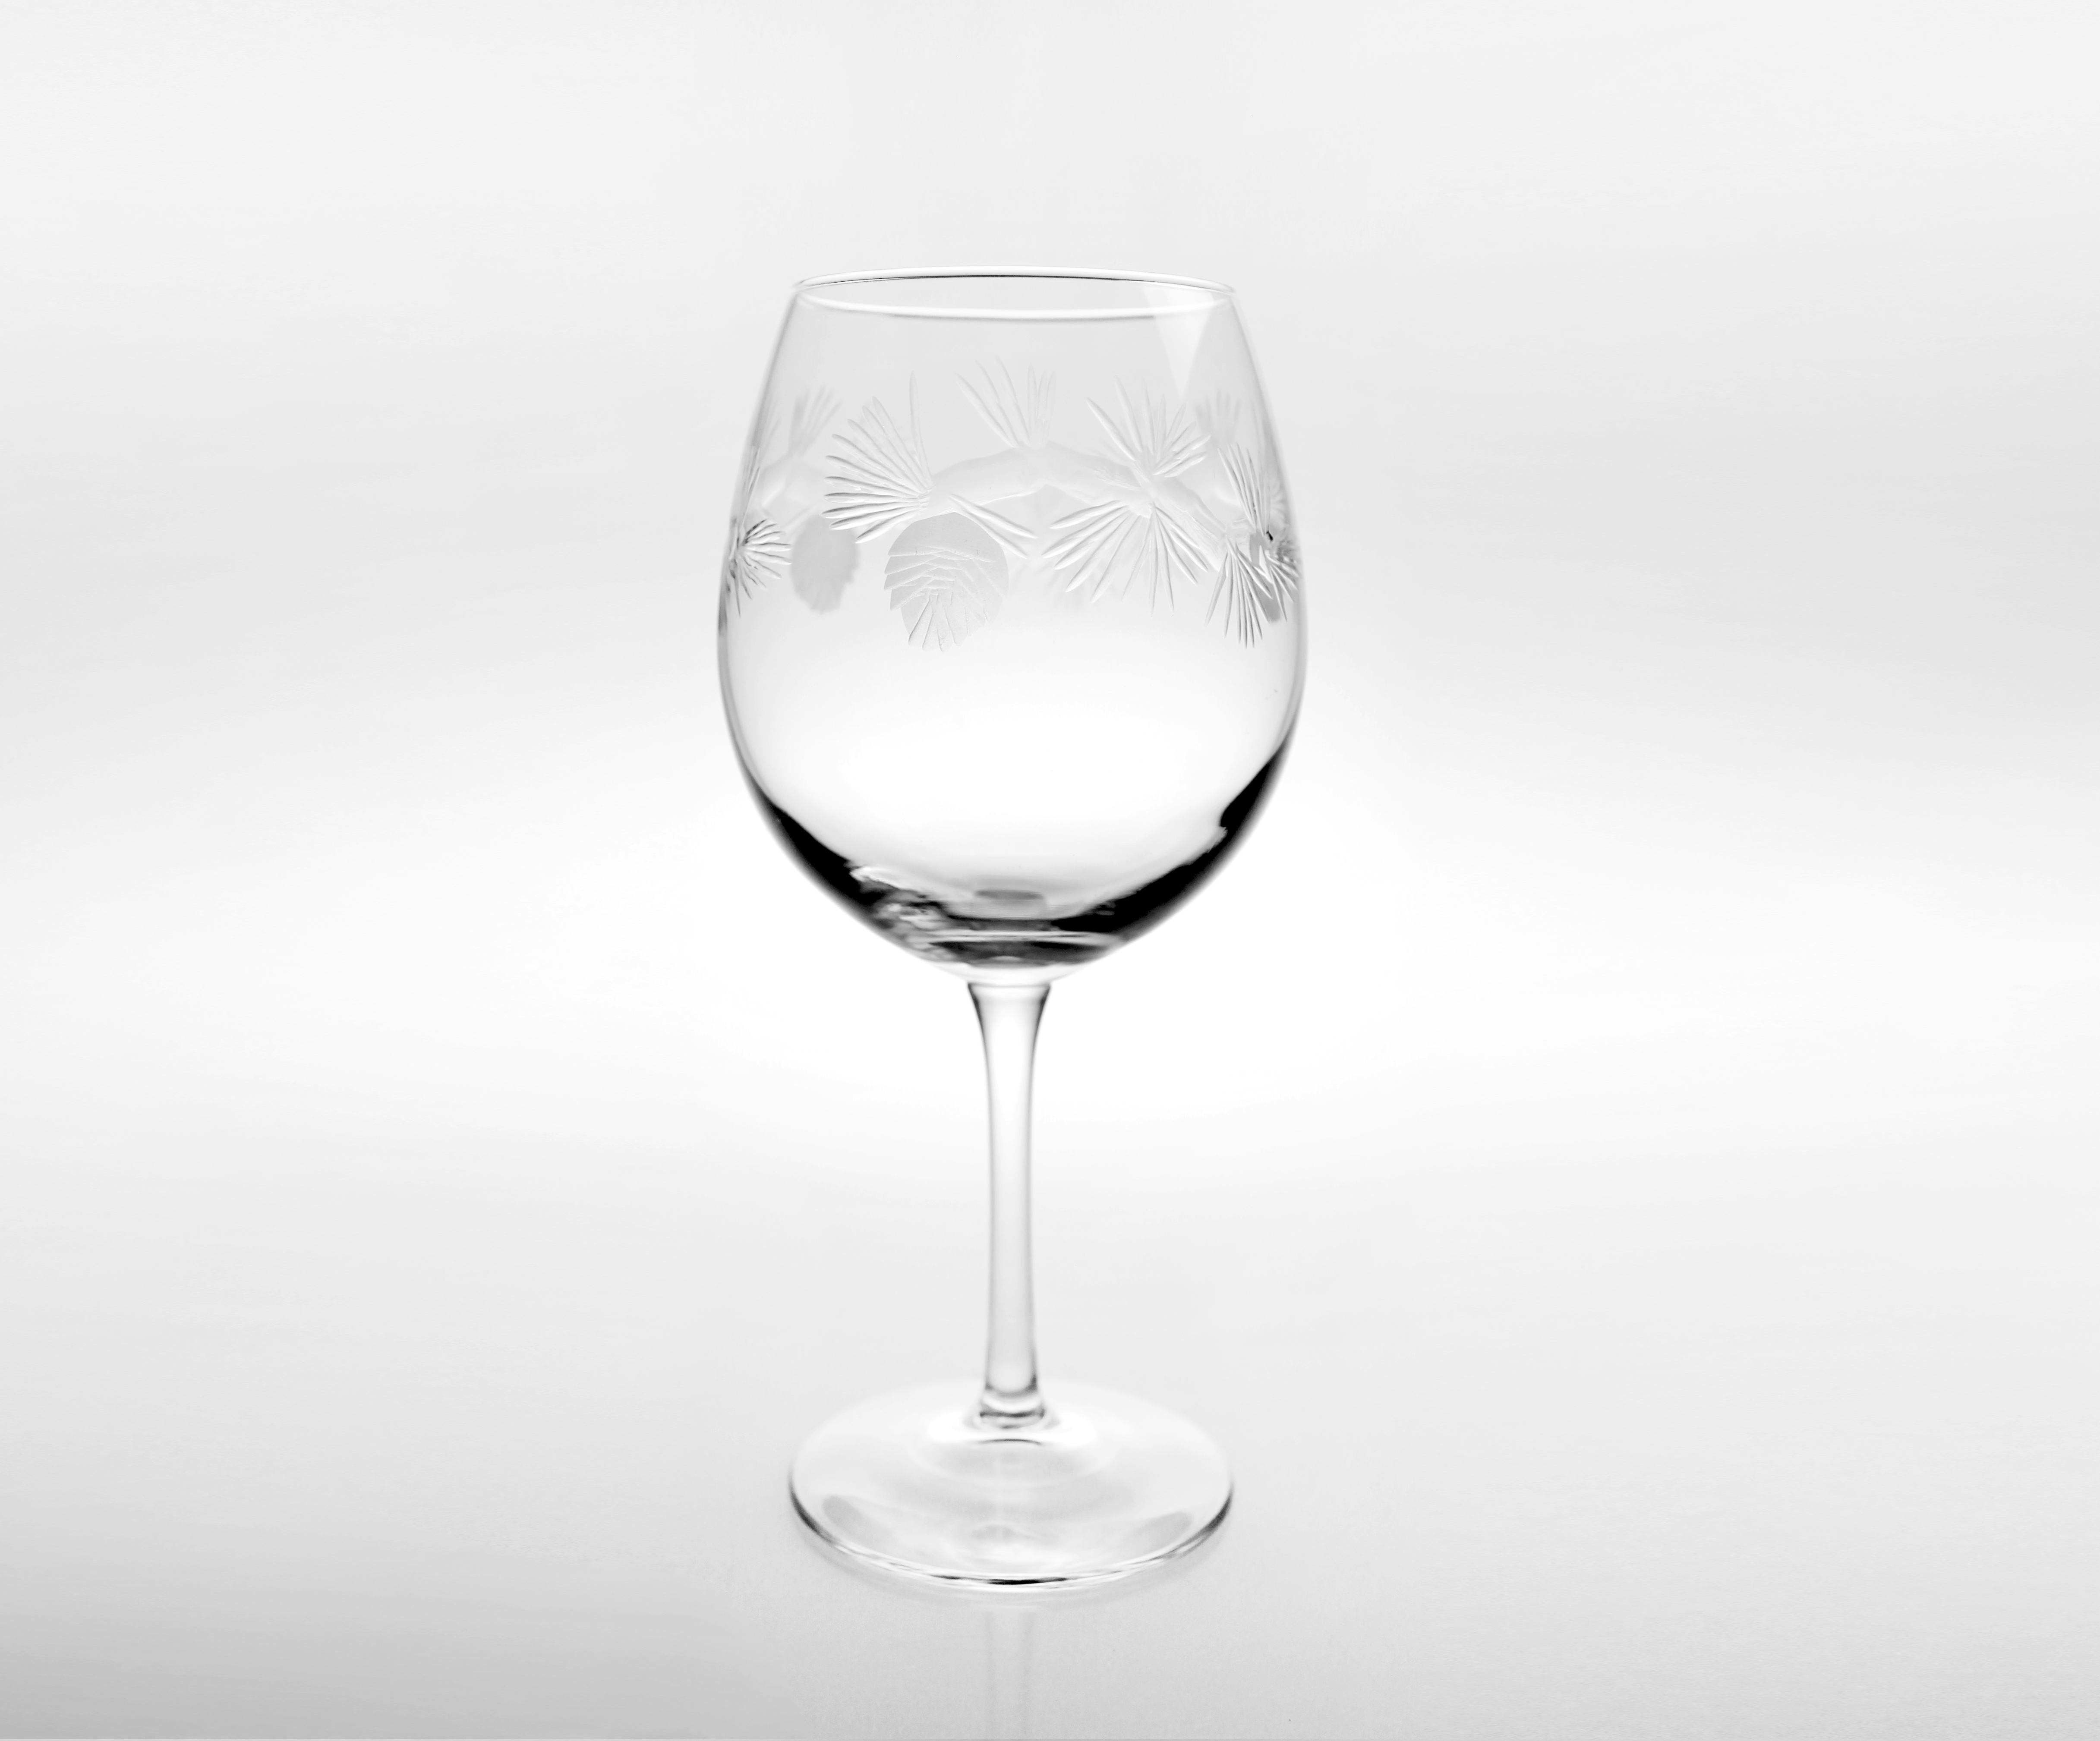 Rolf Glass Icy Pine Balloon Wine Glasses (set of 4)